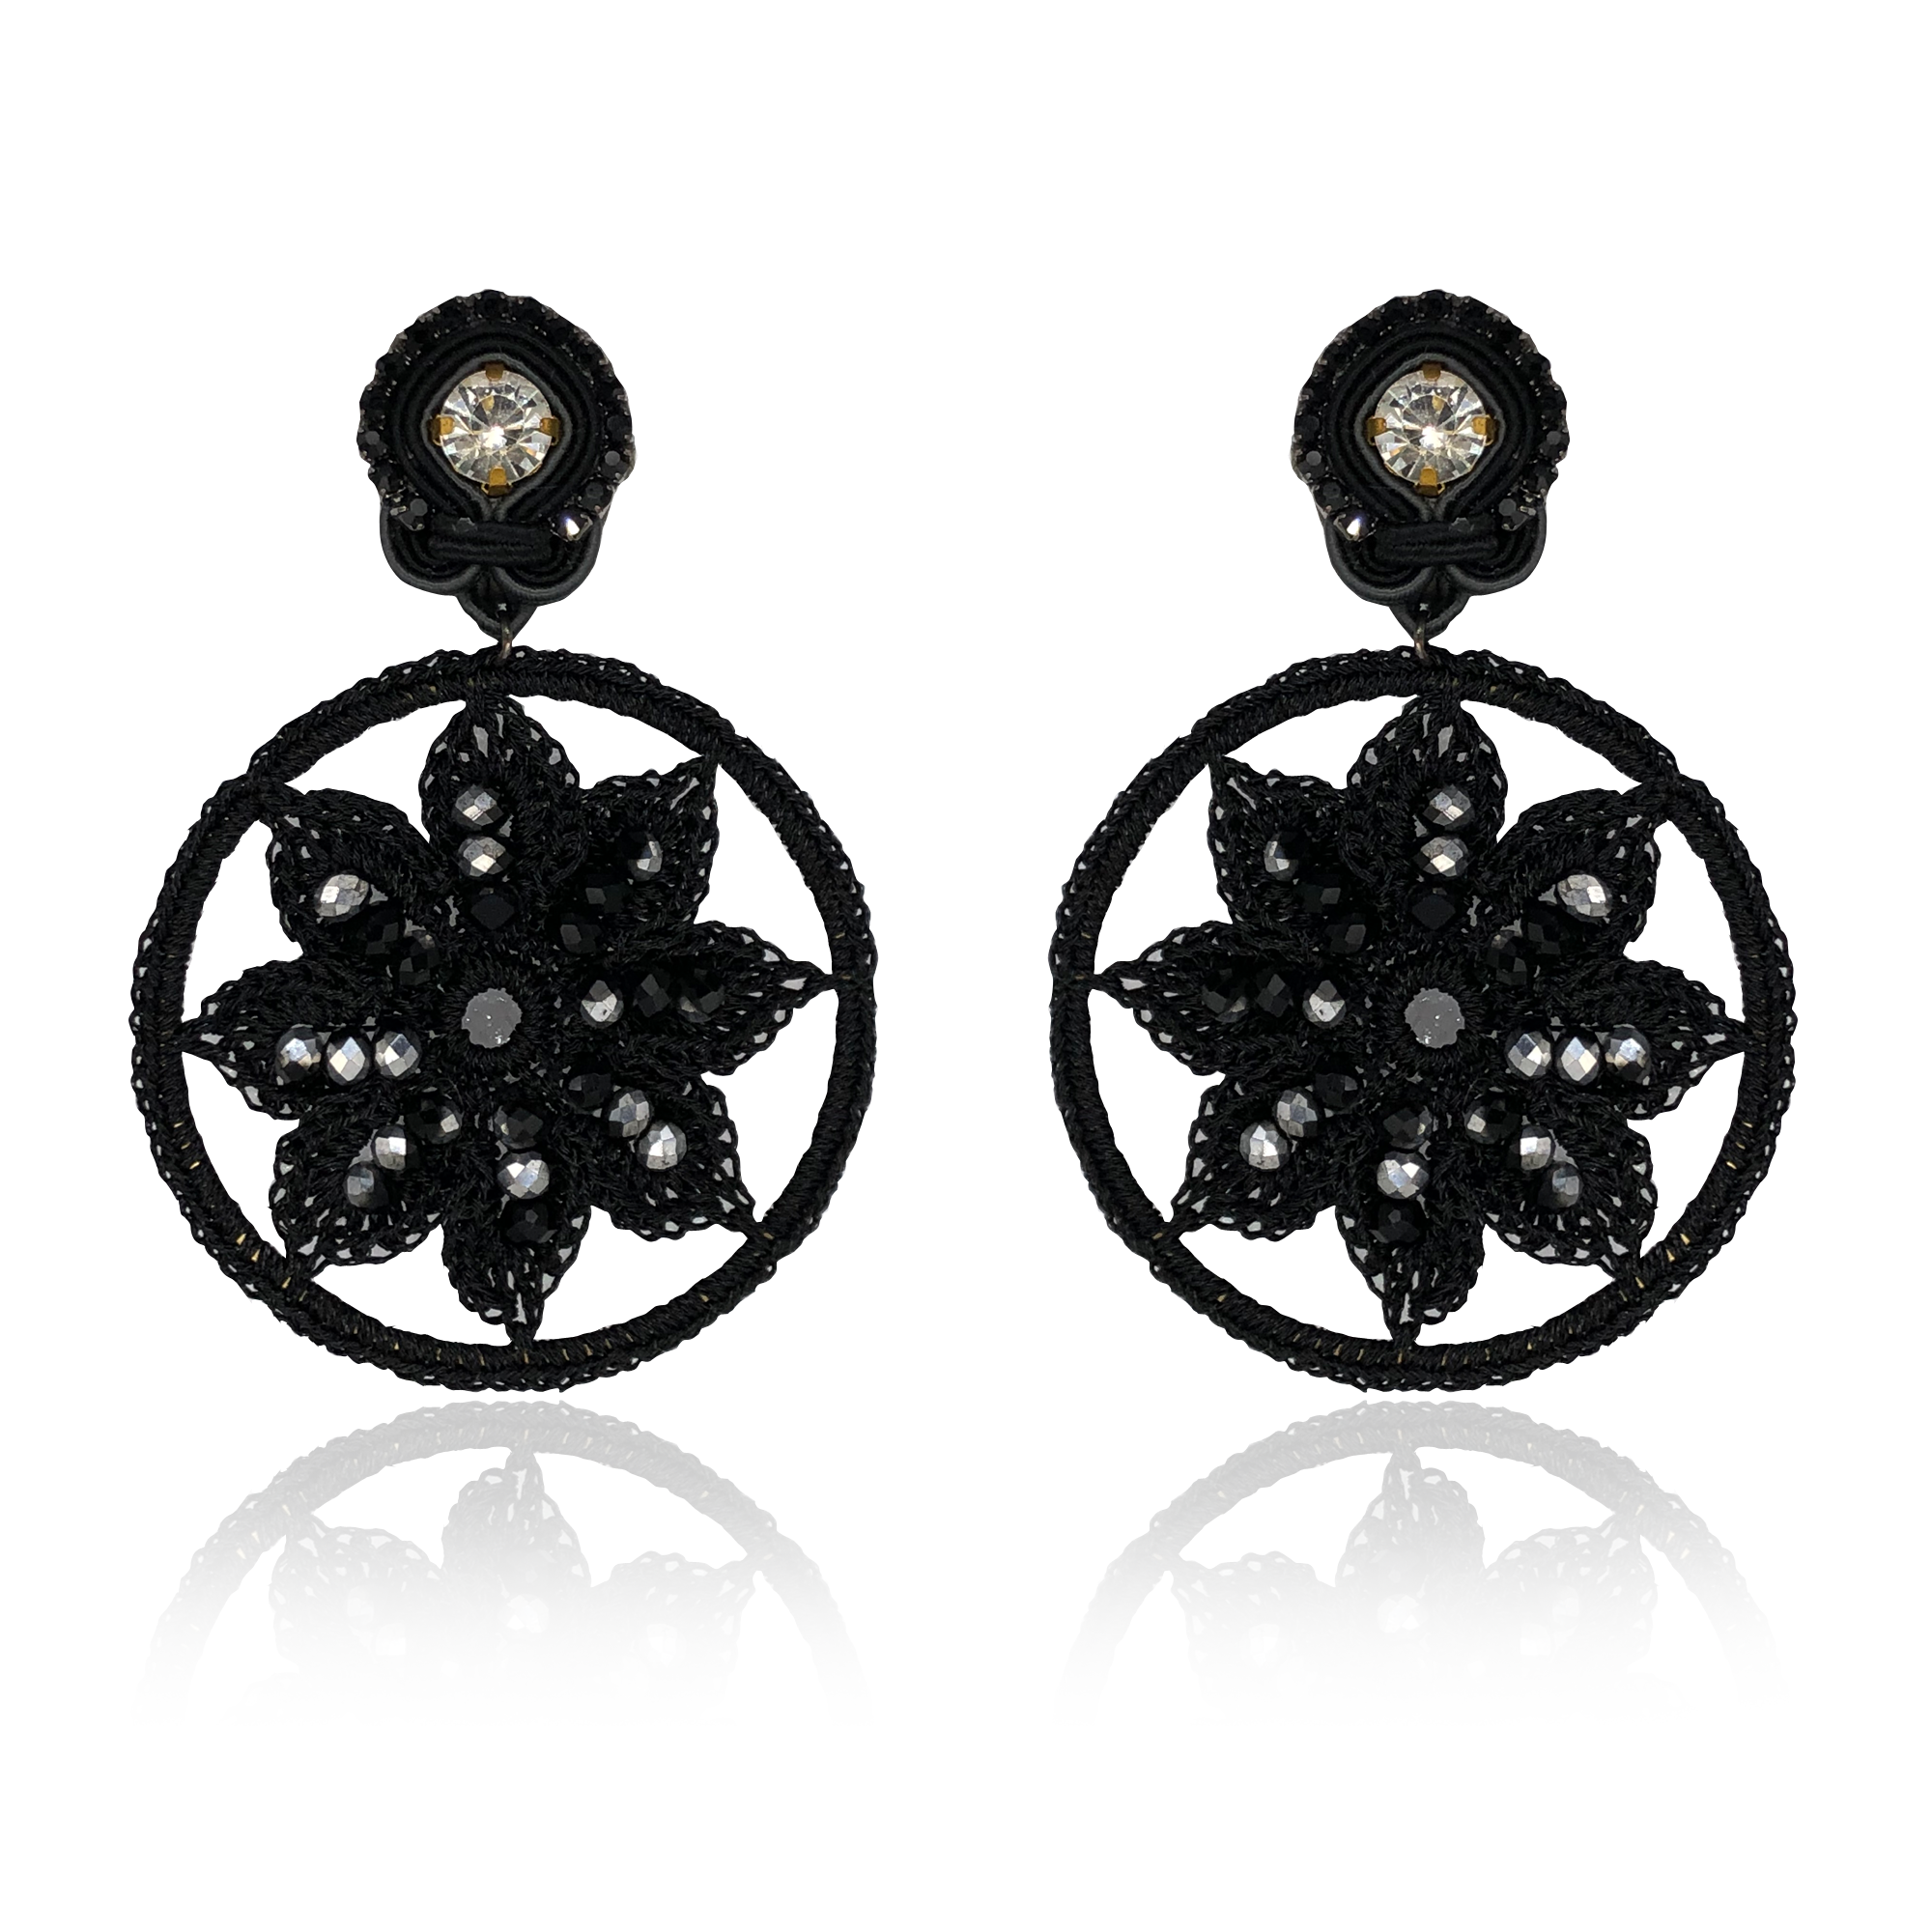 Mandala Black Star Earrings